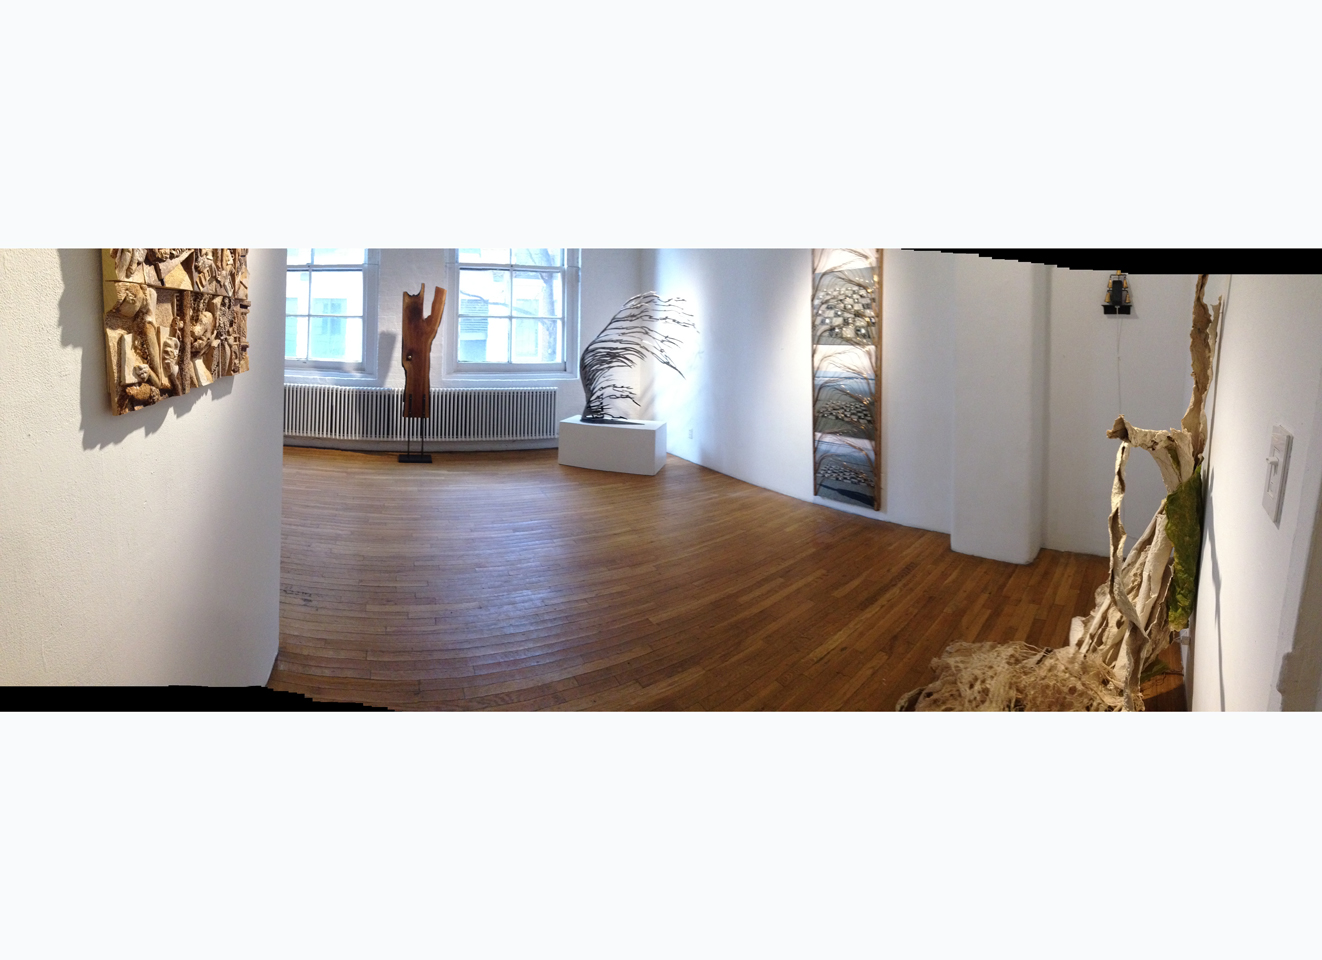 Caroline_Bergonzi_Currently-80_Sculptors-Guild_Sculptor_fine-art_New-york_05.jpg